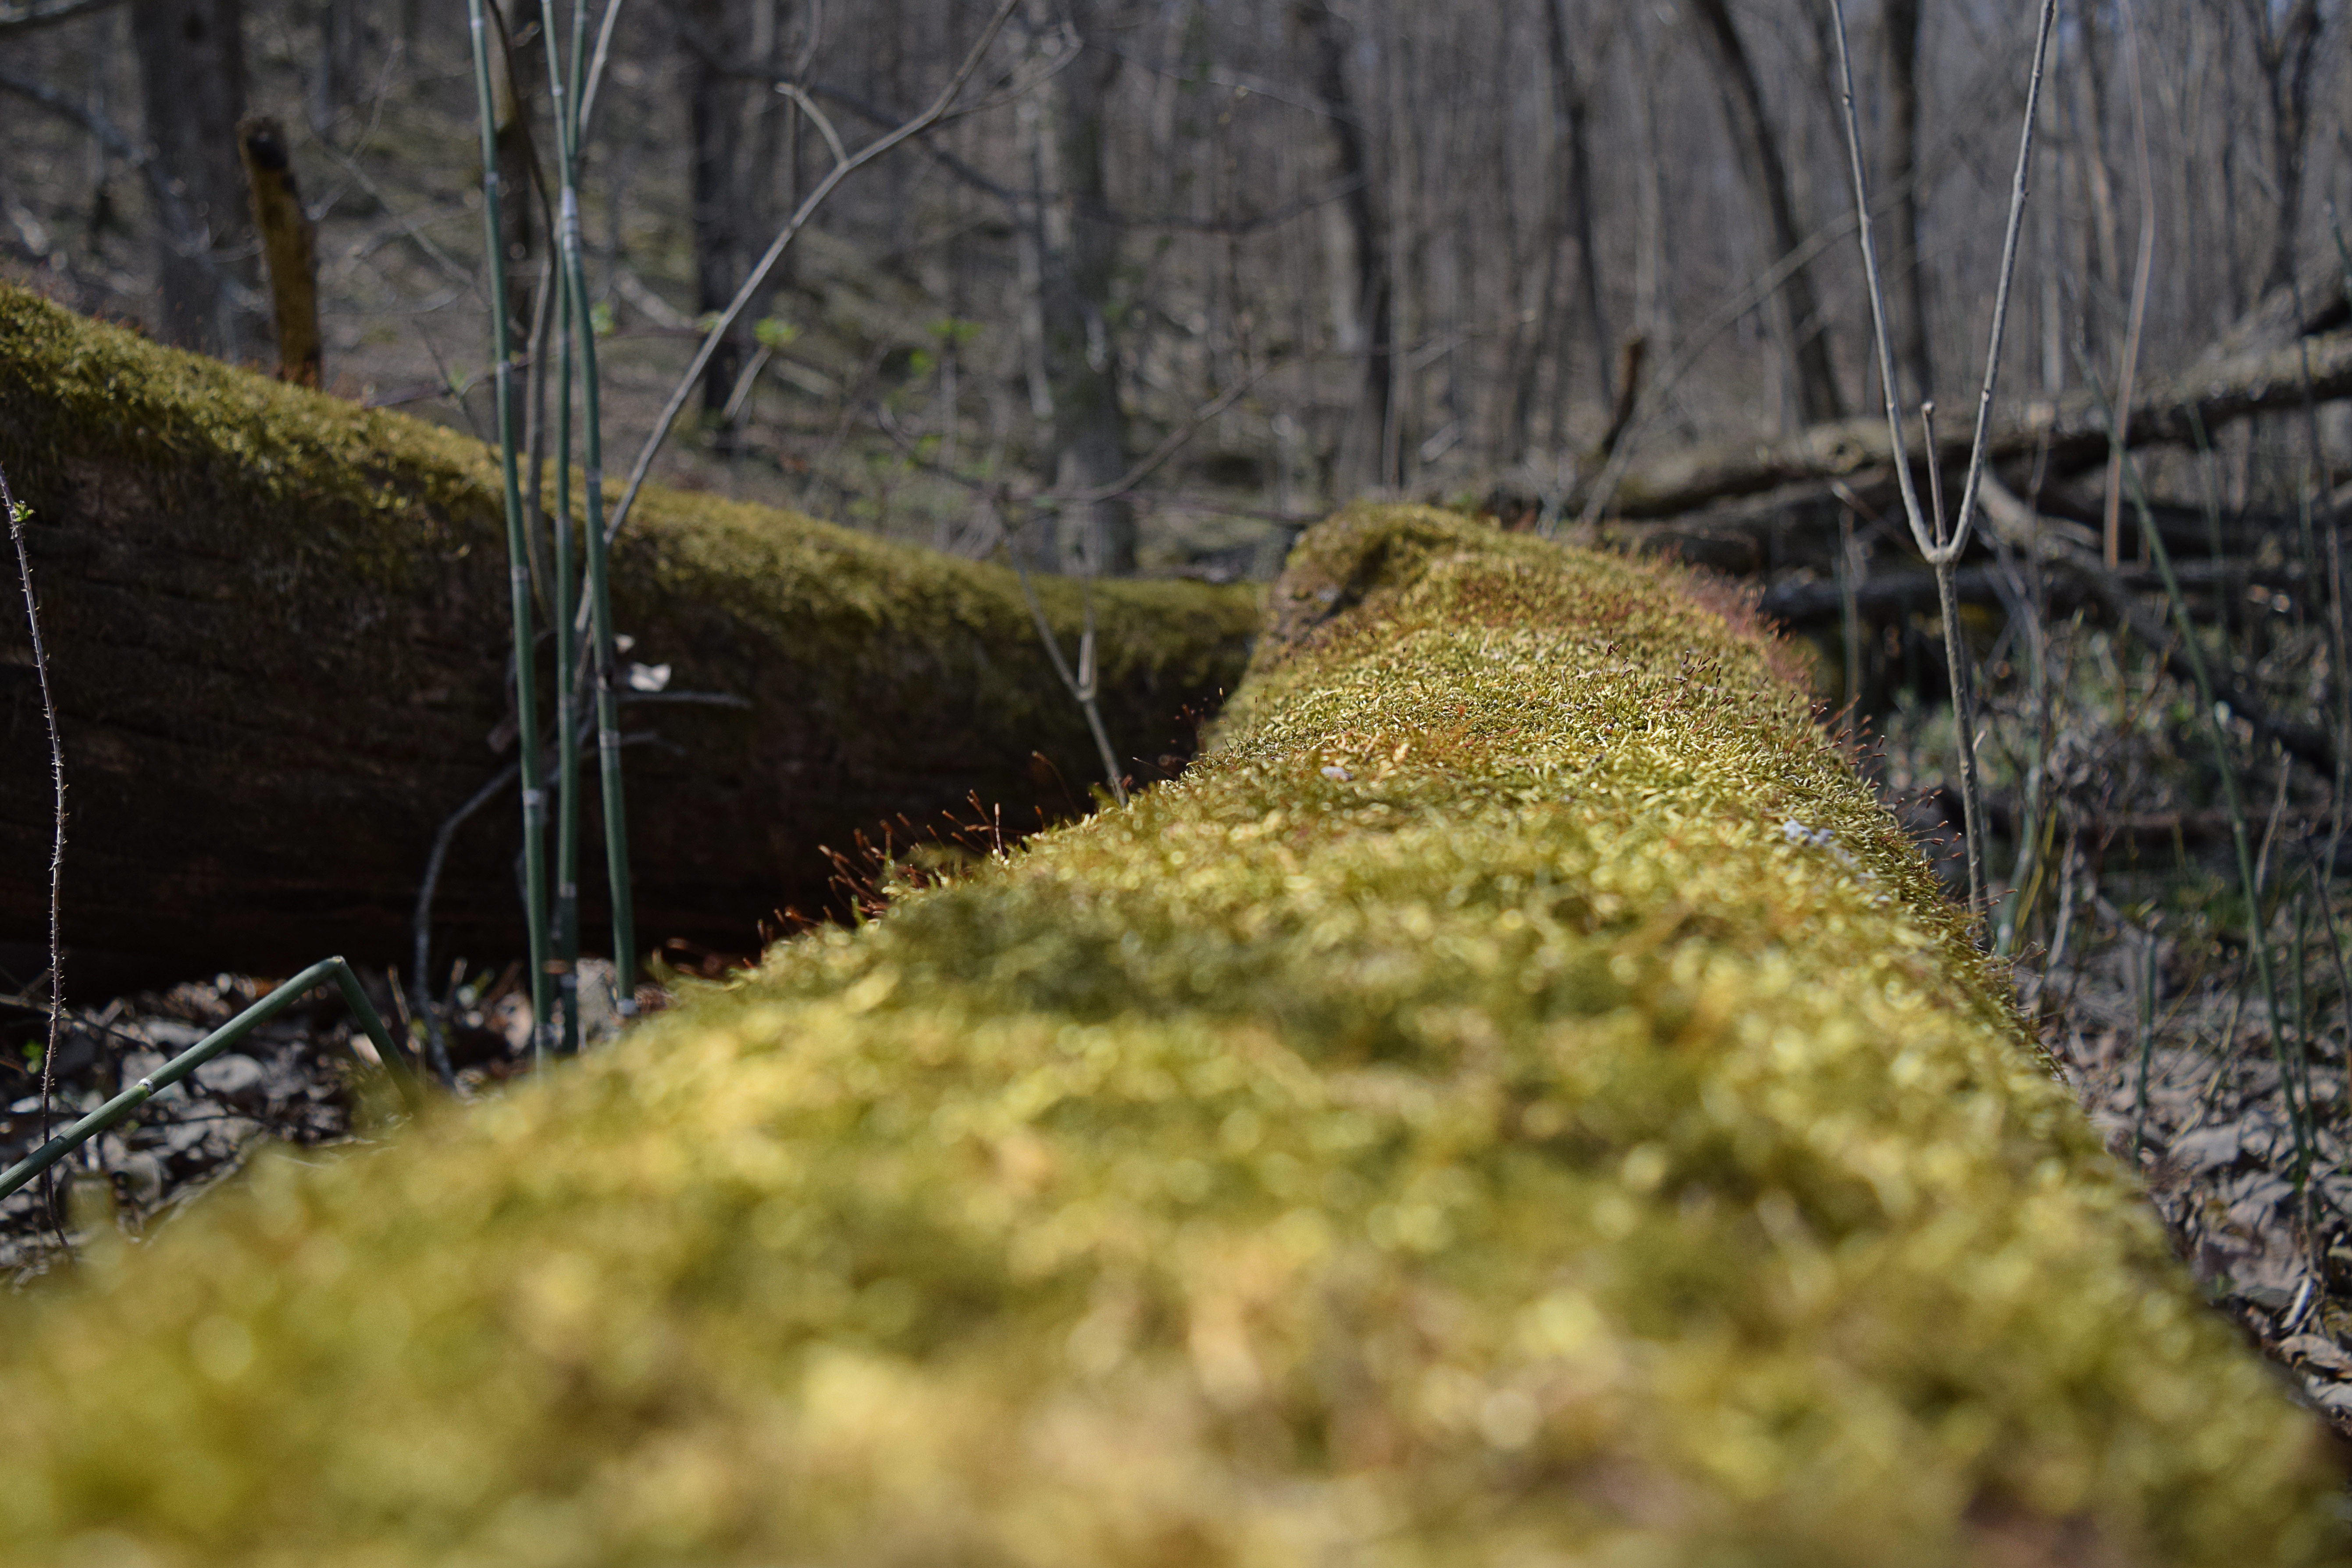 Photo Time: The Mossy Log